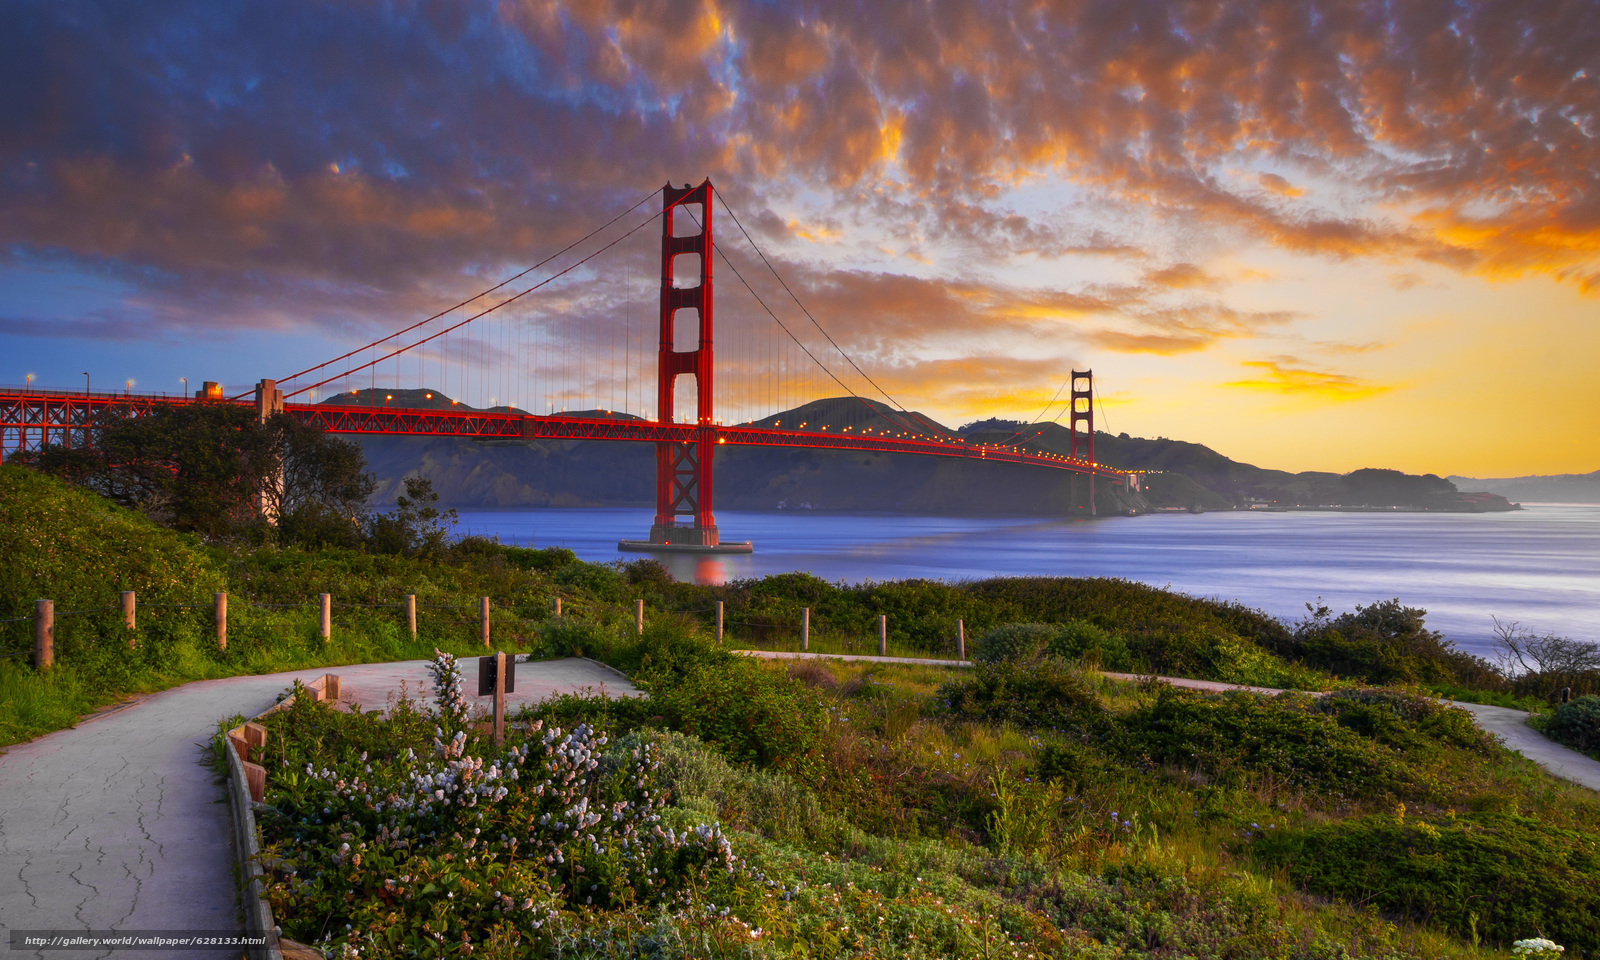 The Golden Gate Bridge, the Golden Gate, Frisco